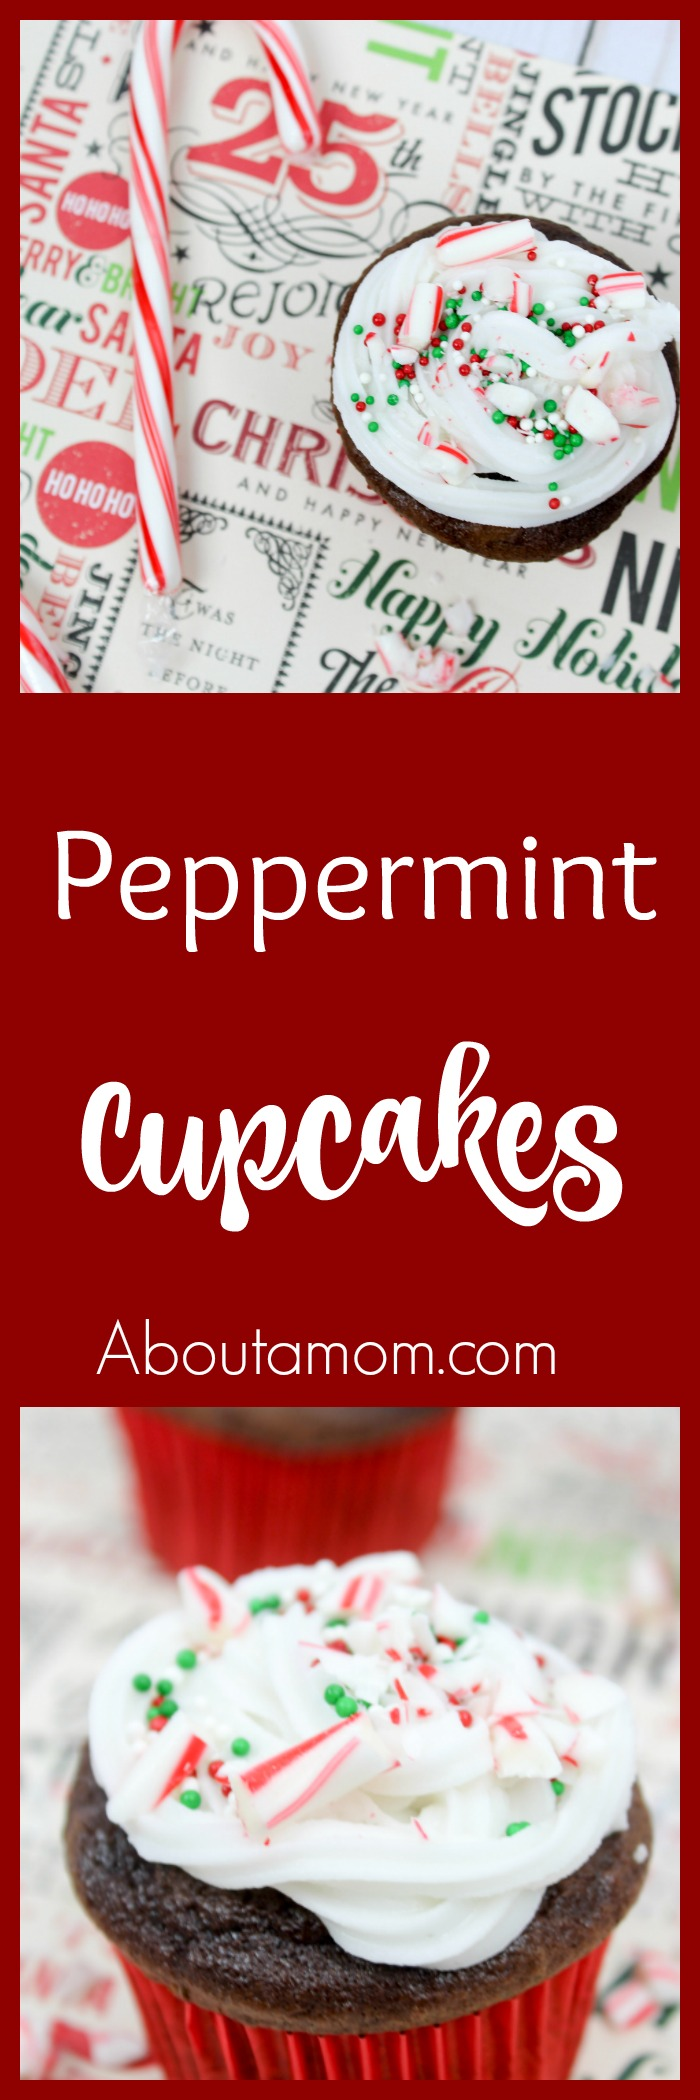 Looking for a simple peppermint cupcake recipe to take to your next holiday get together? These peppermint cupcakes are a fun Christmas treat.